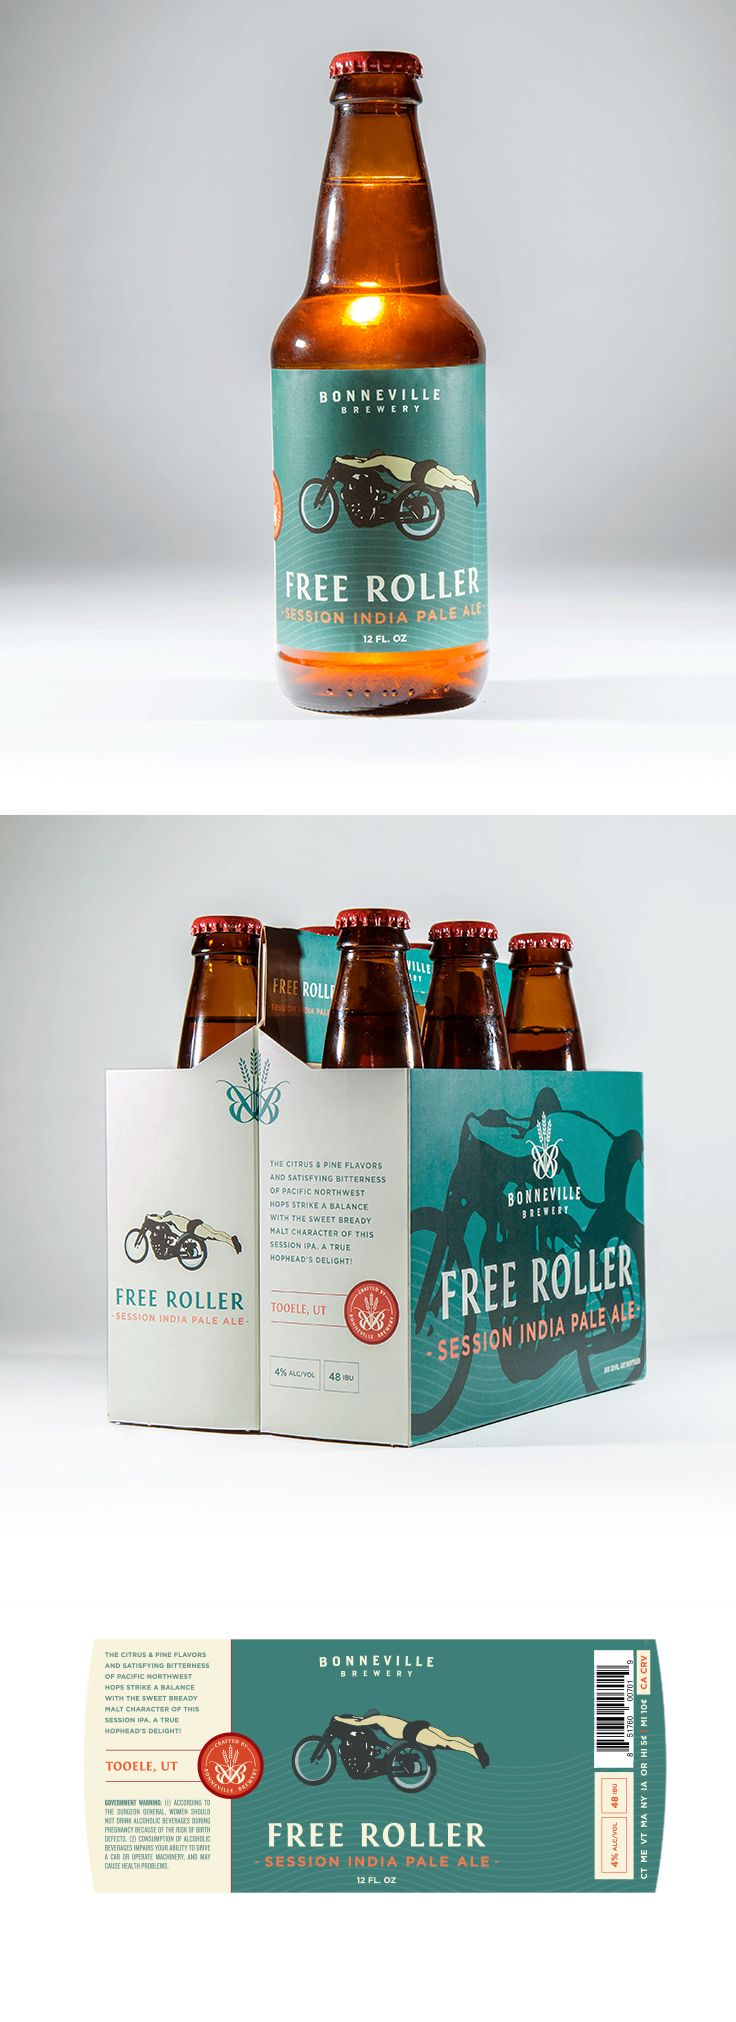 Free Roller Label and Box design by Epic Marketing for Bonneville Brewery. #packagingdesing #graphicdesing #labeldesign #beer #beerlabel